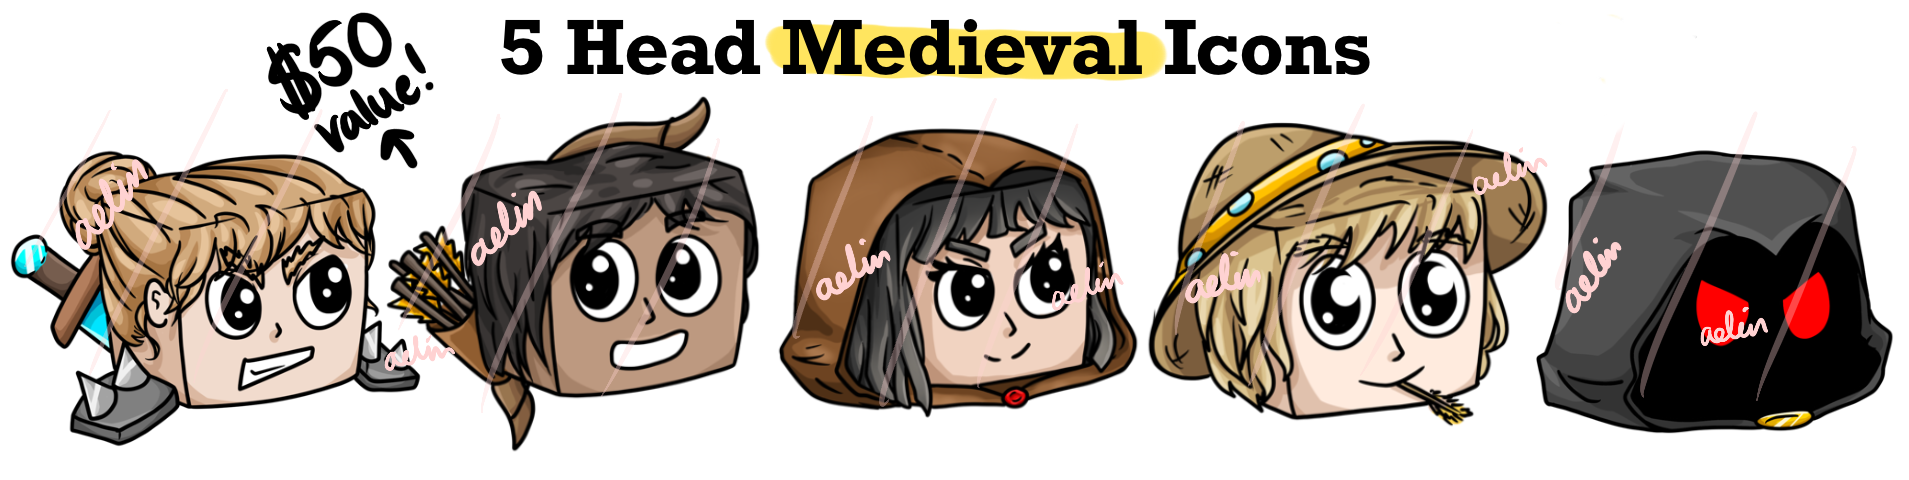 Minecraft medieval icons for buycraft or tebex icons